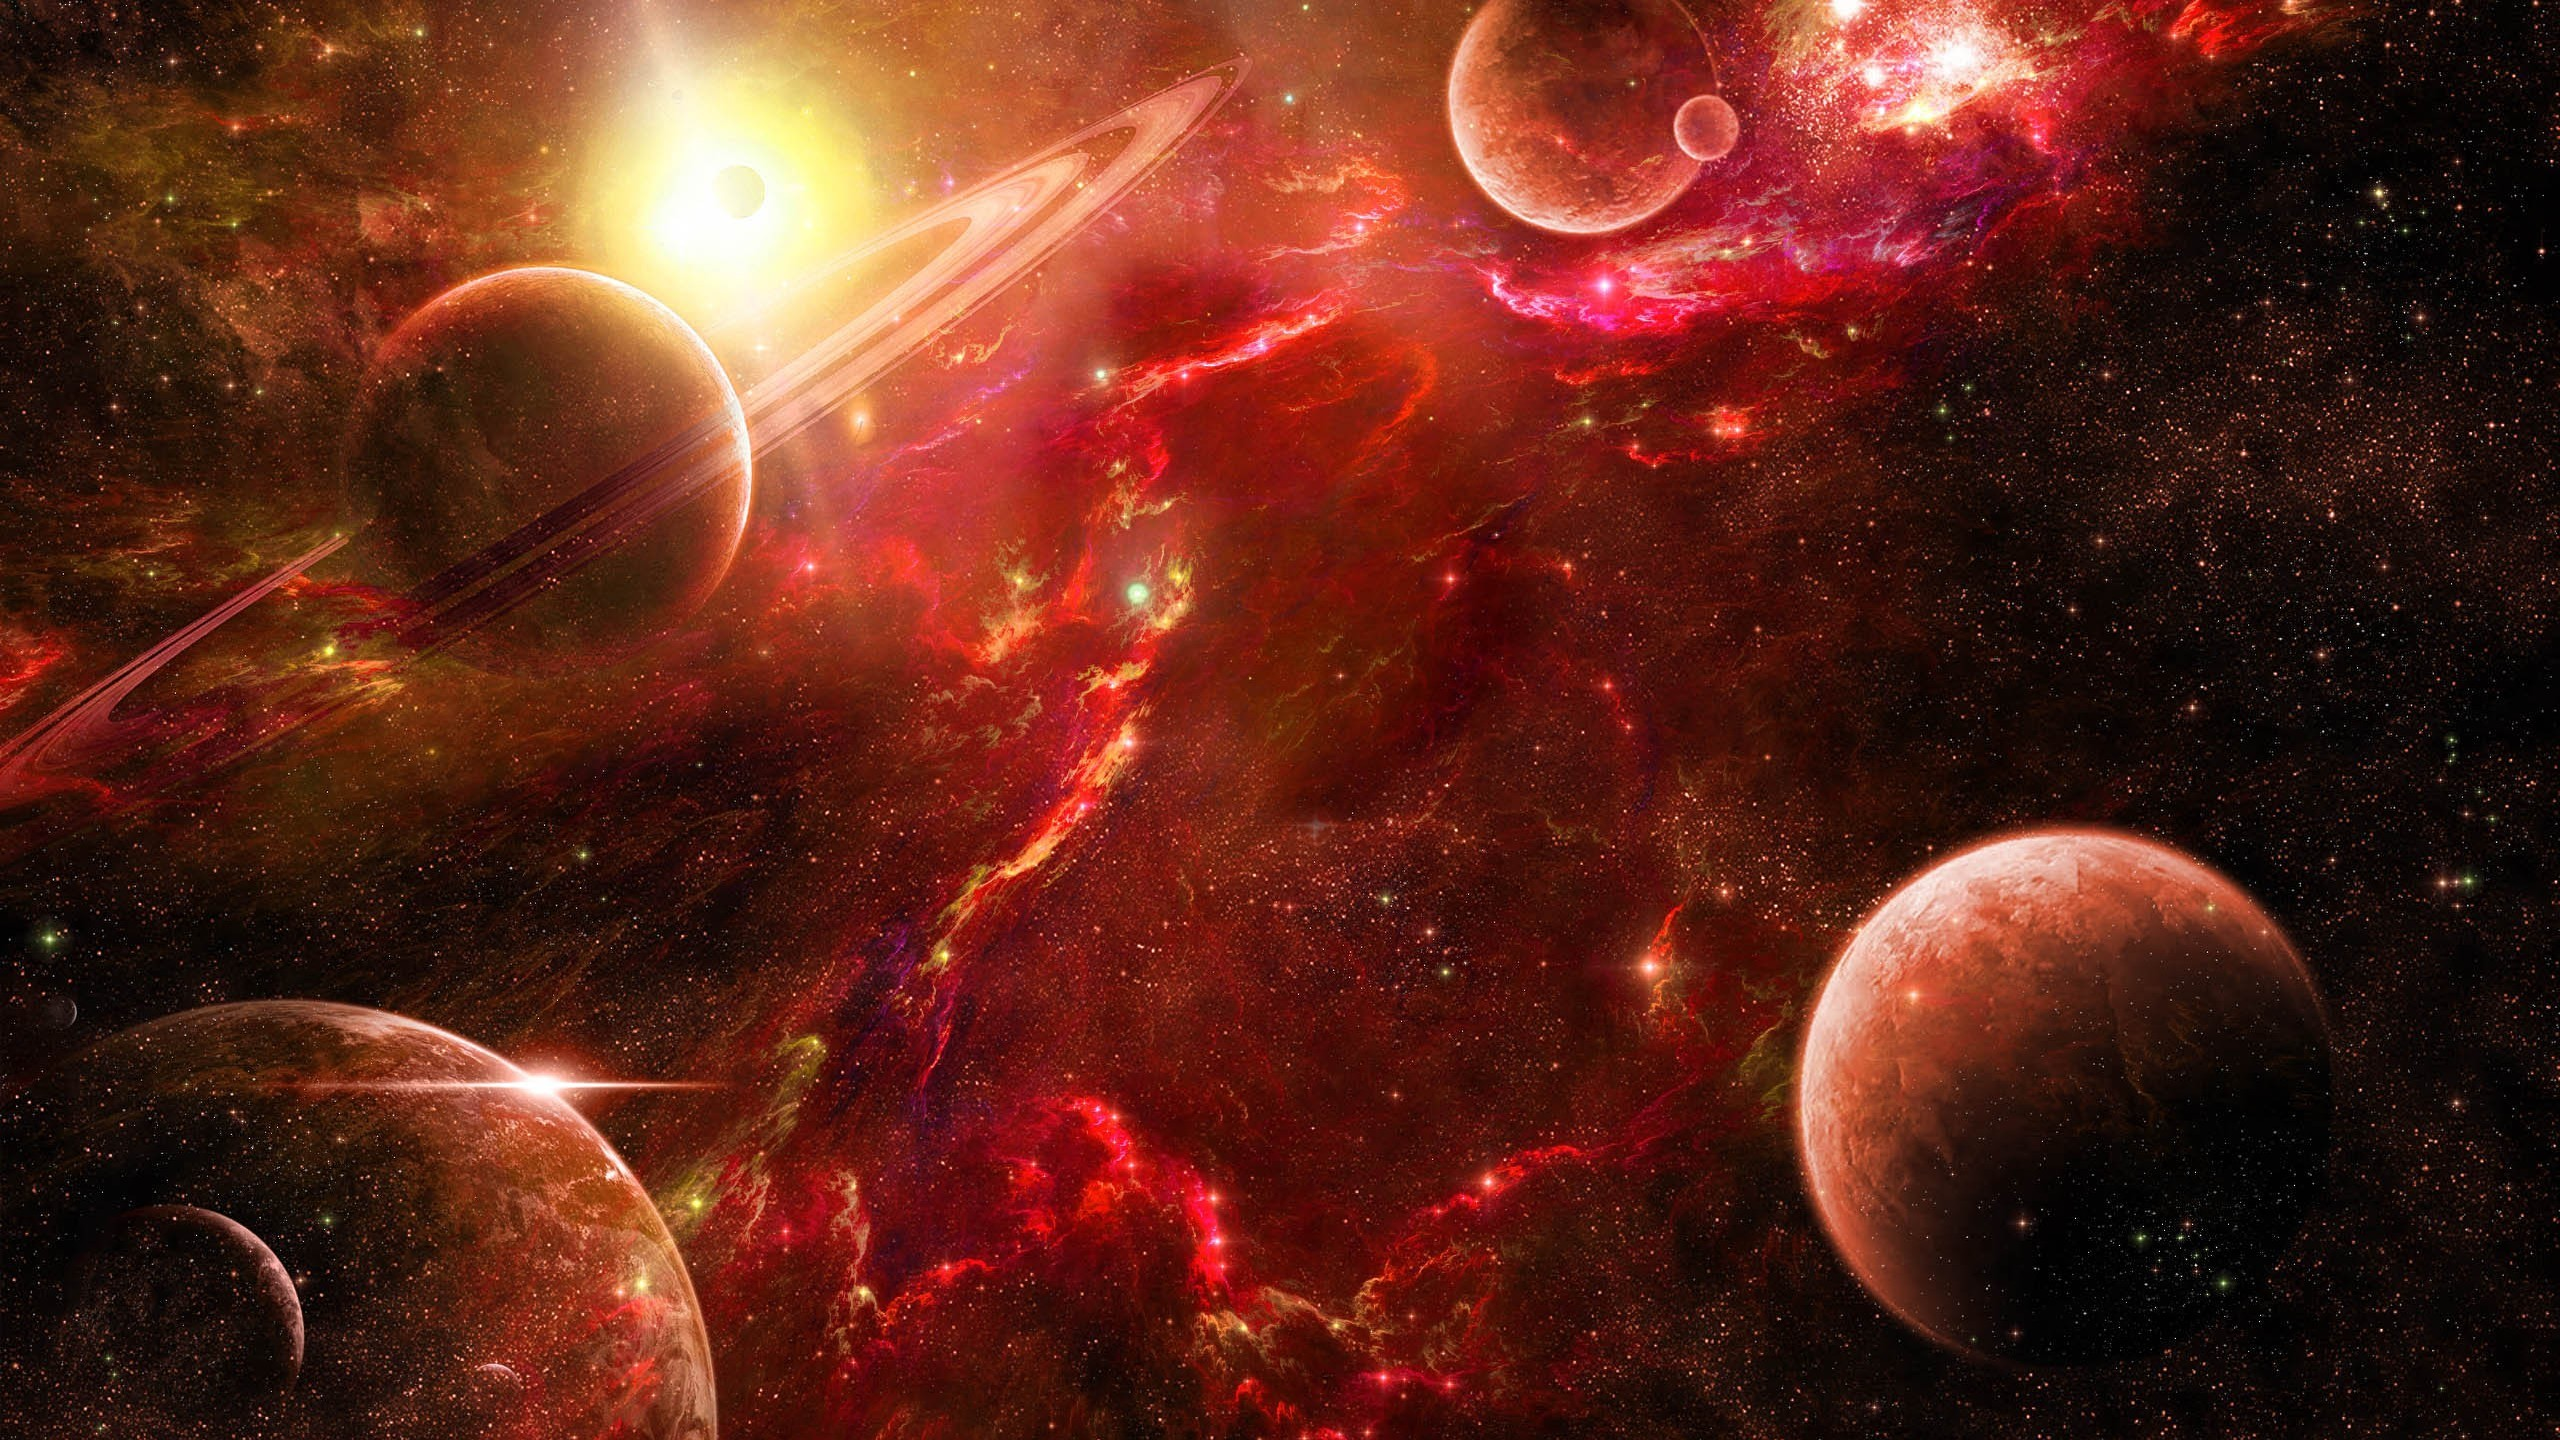 Popular outer space wallpaper 2560x1600 wallpapers - Space 2560 x 1440 ...